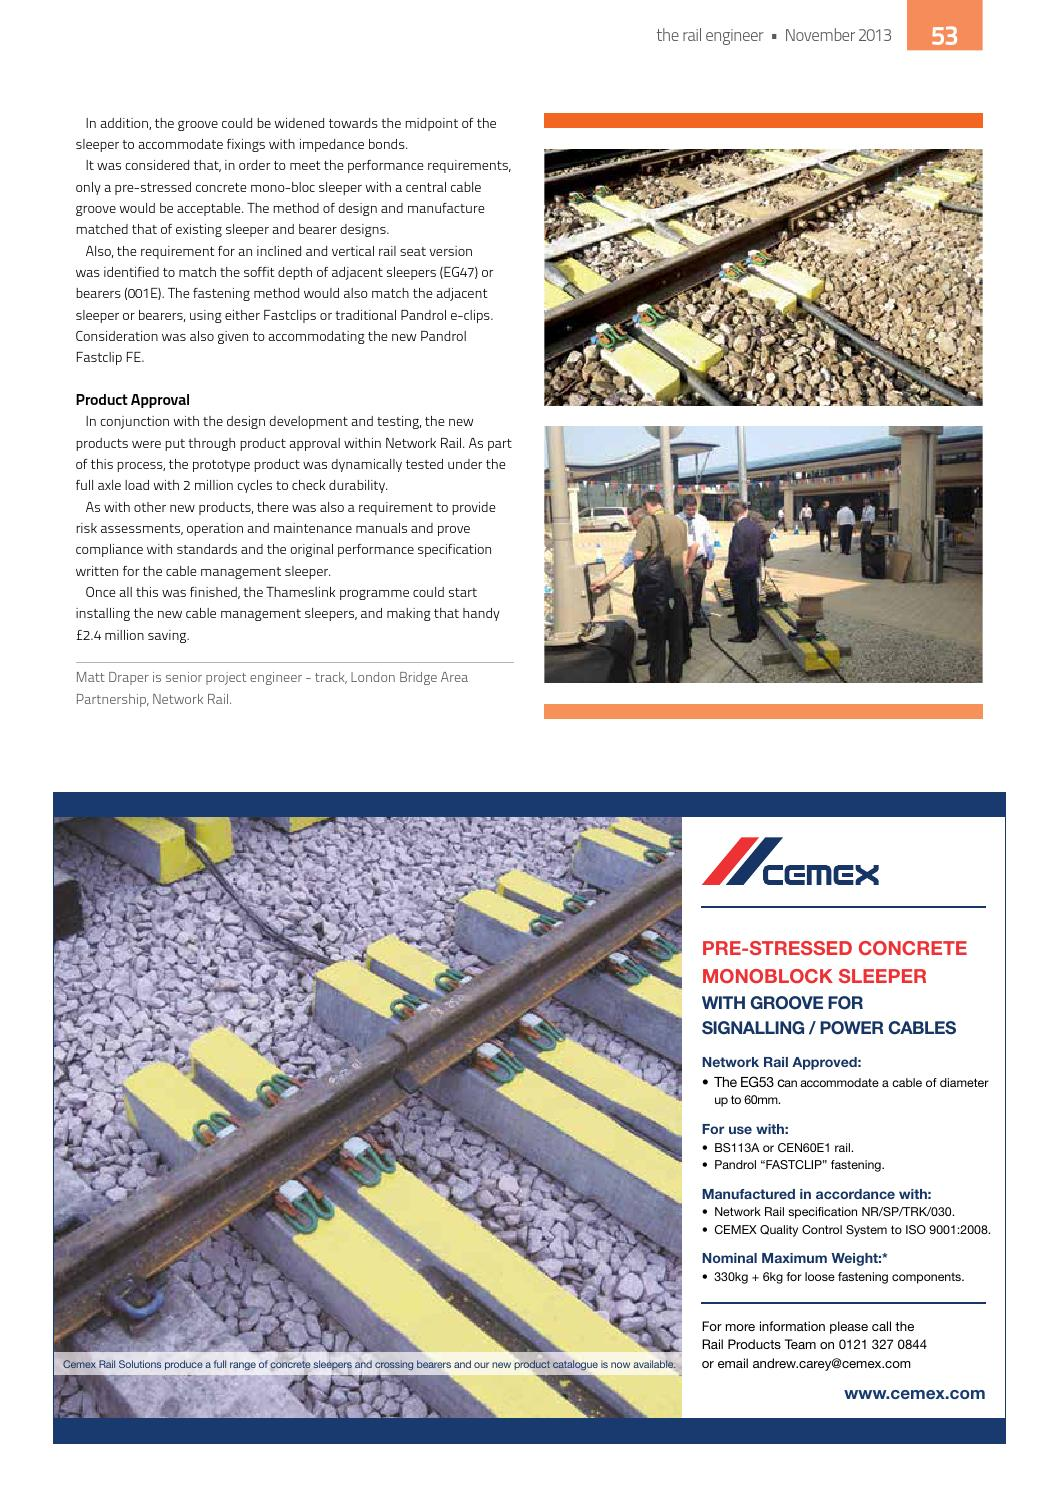 The Rail Engineer  Issue 109  November 2013 by Rail